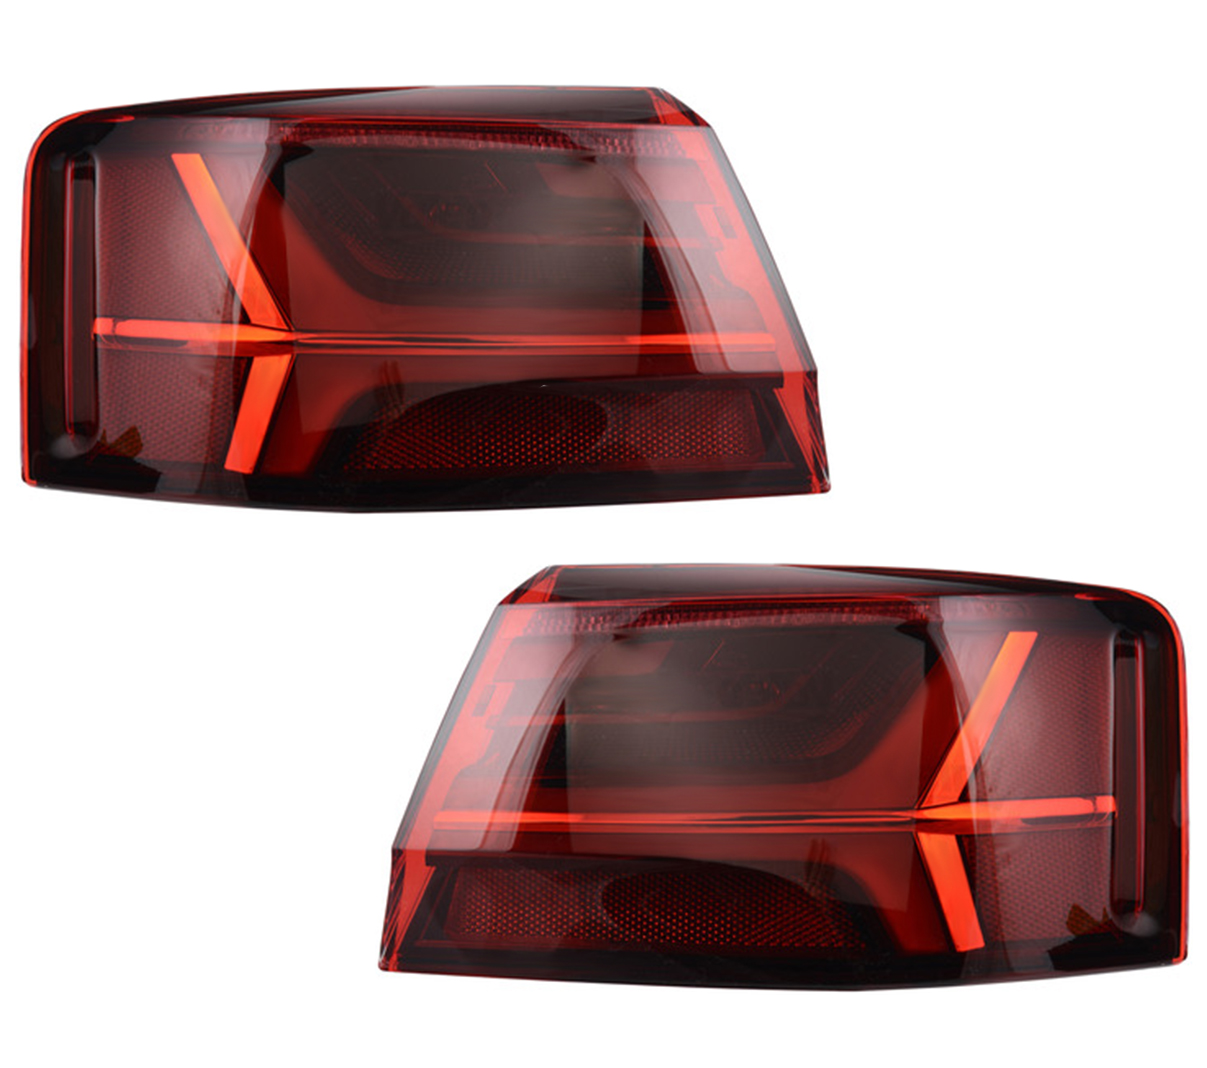 NEW OEM VALEO OUTER TAIL LIGHT PAIR FITS AUDI A6 QUATTRO